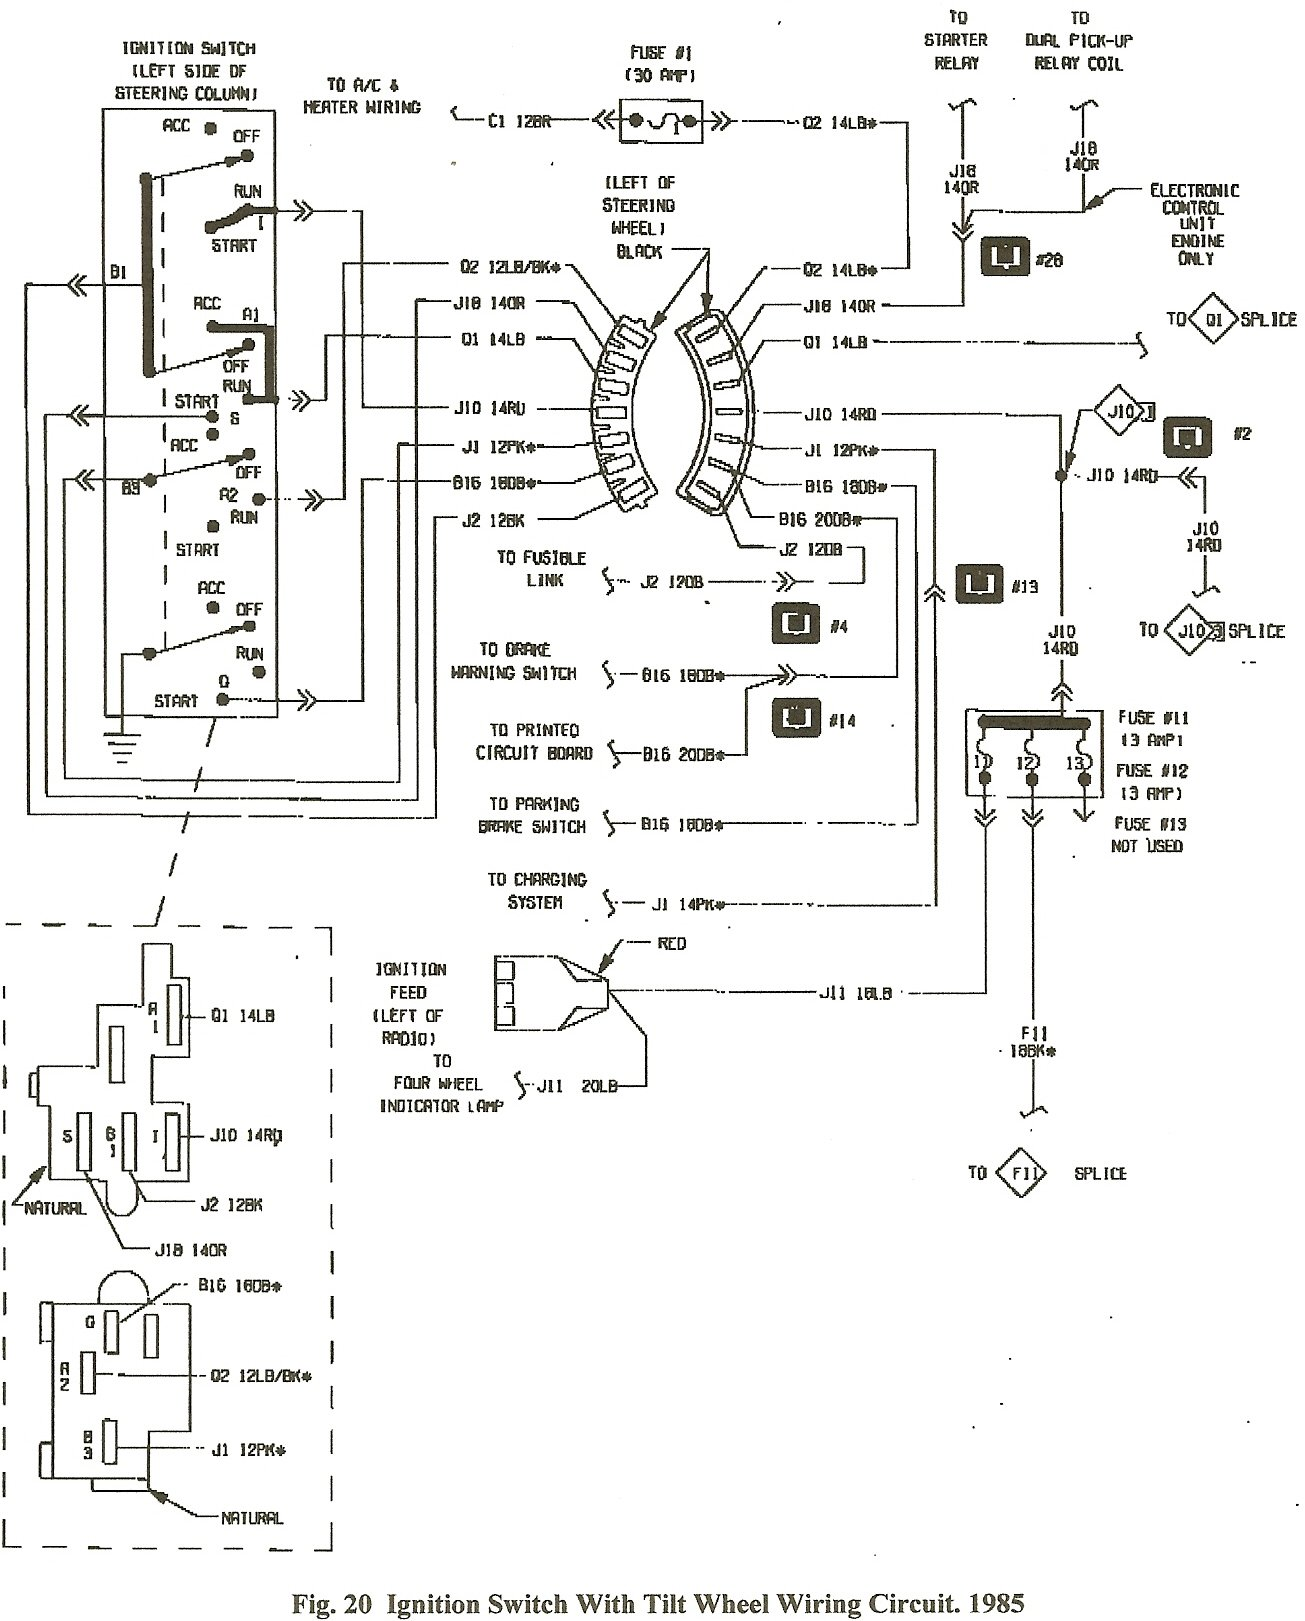 DIAGRAM] Dodge B250 Wiring Diagram FULL Version HD Quality Wiring Diagram -  CINCHDIAGRAMS.LUCB.FRcinchdiagrams.lucb.fr